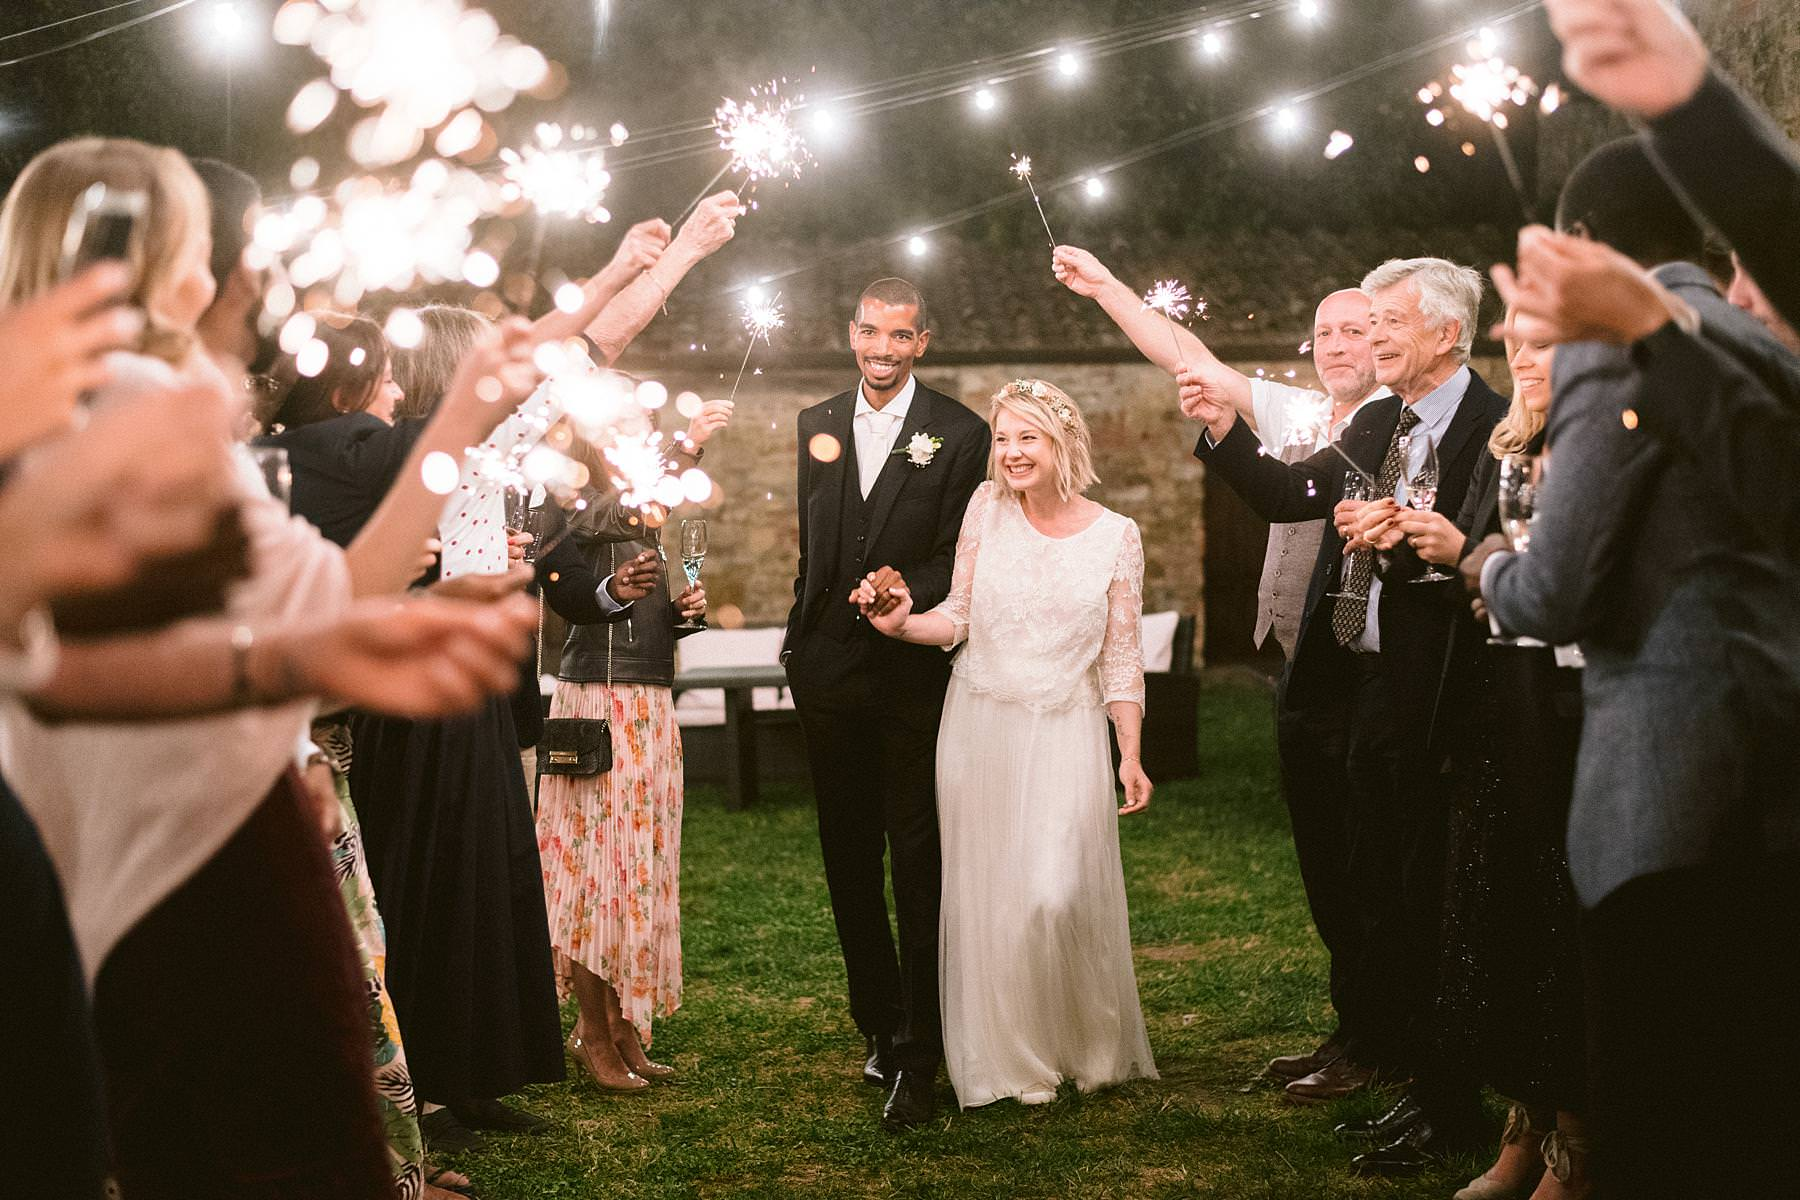 Sweet and fun wedding in Italy at Montelucci Country Resort in the countryside of Tuscany between Chianti and Valdarno. Tunnel of sparkles light